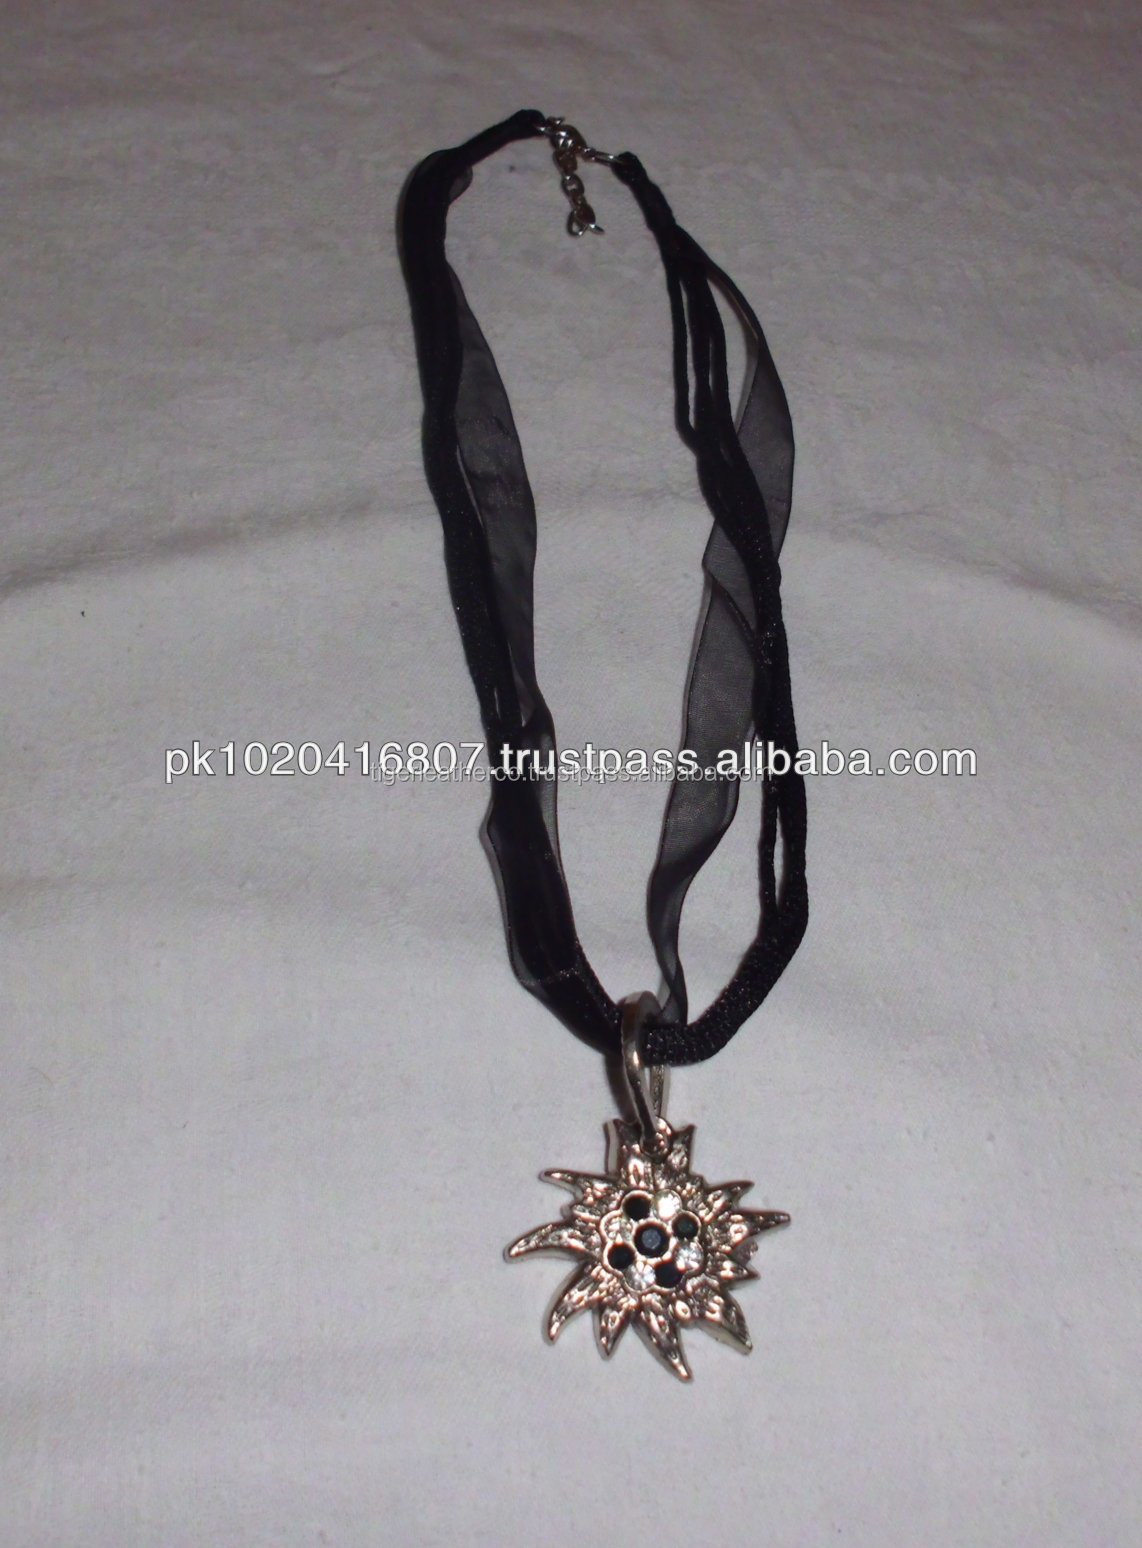 Trachten Hanger / Schmuck For ladies